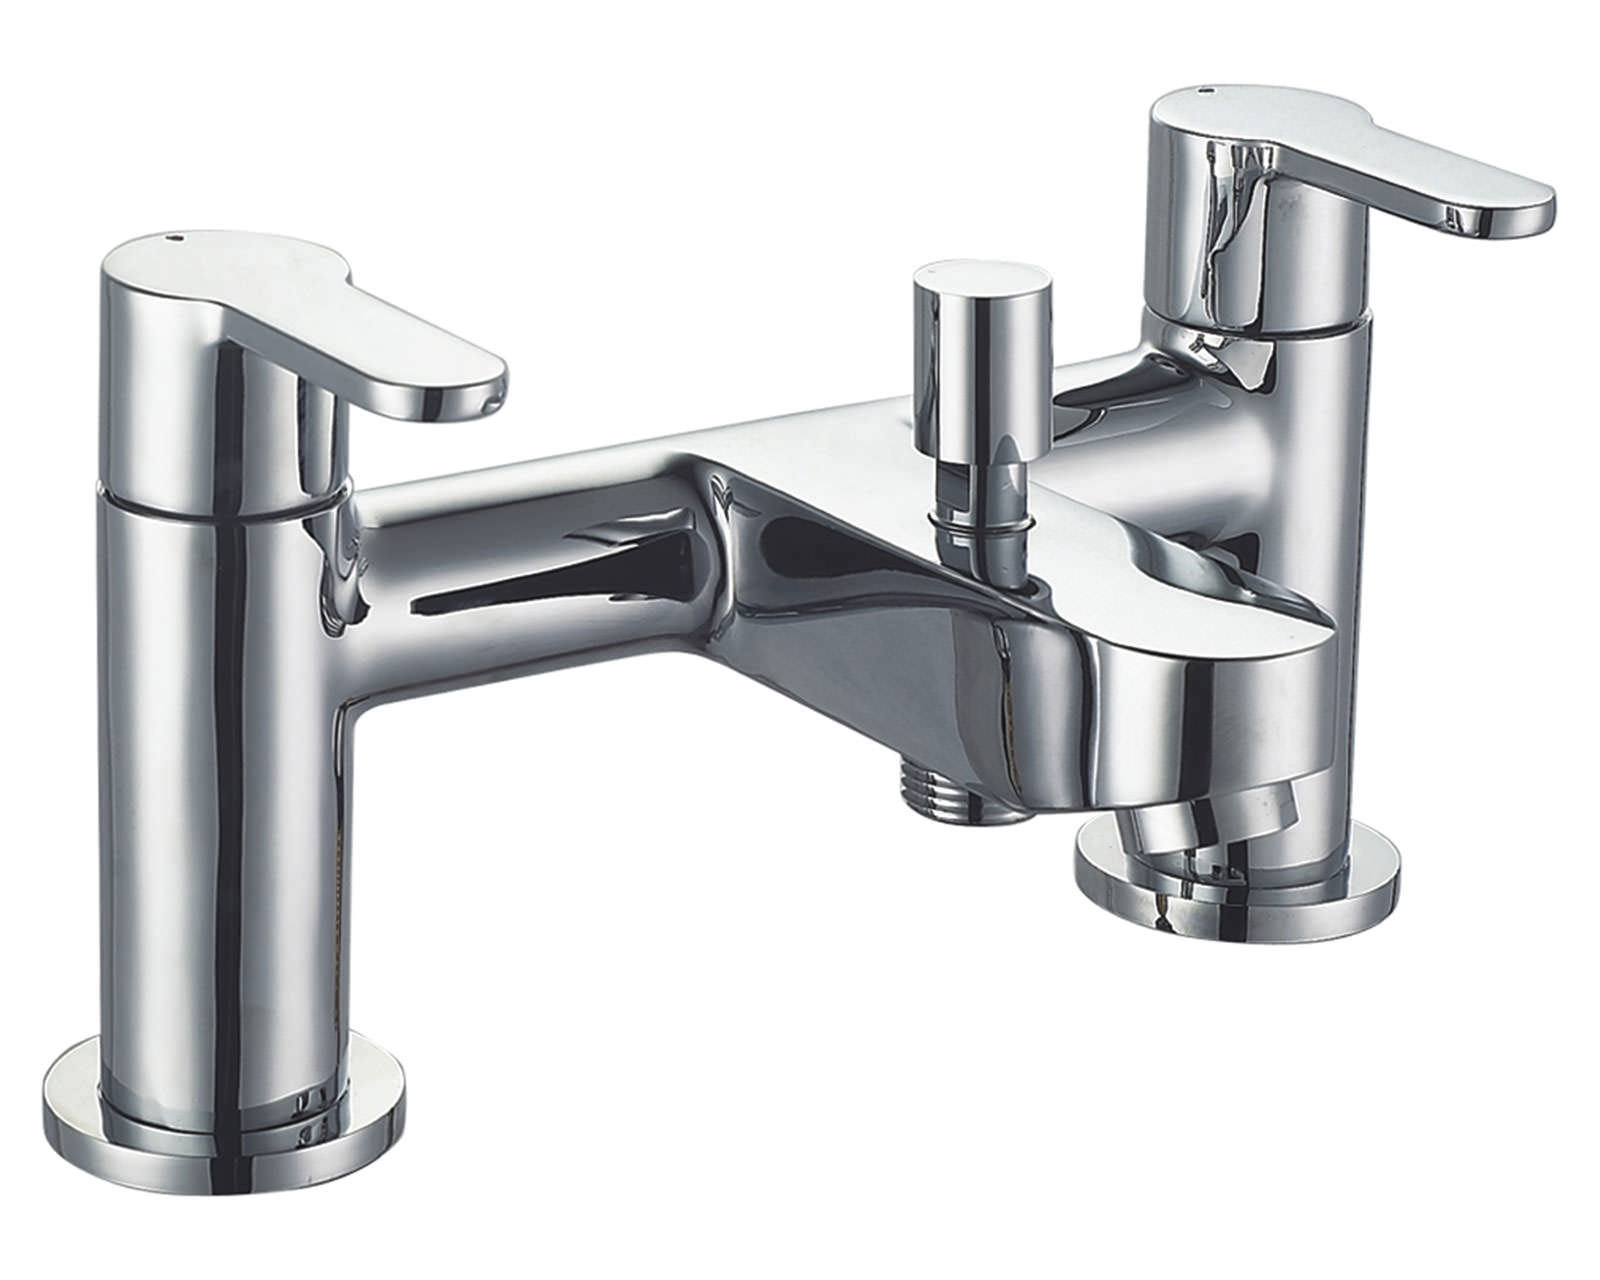 Mayfair Focus Deck Mounted Bath Shower Mixer Tap With Kit